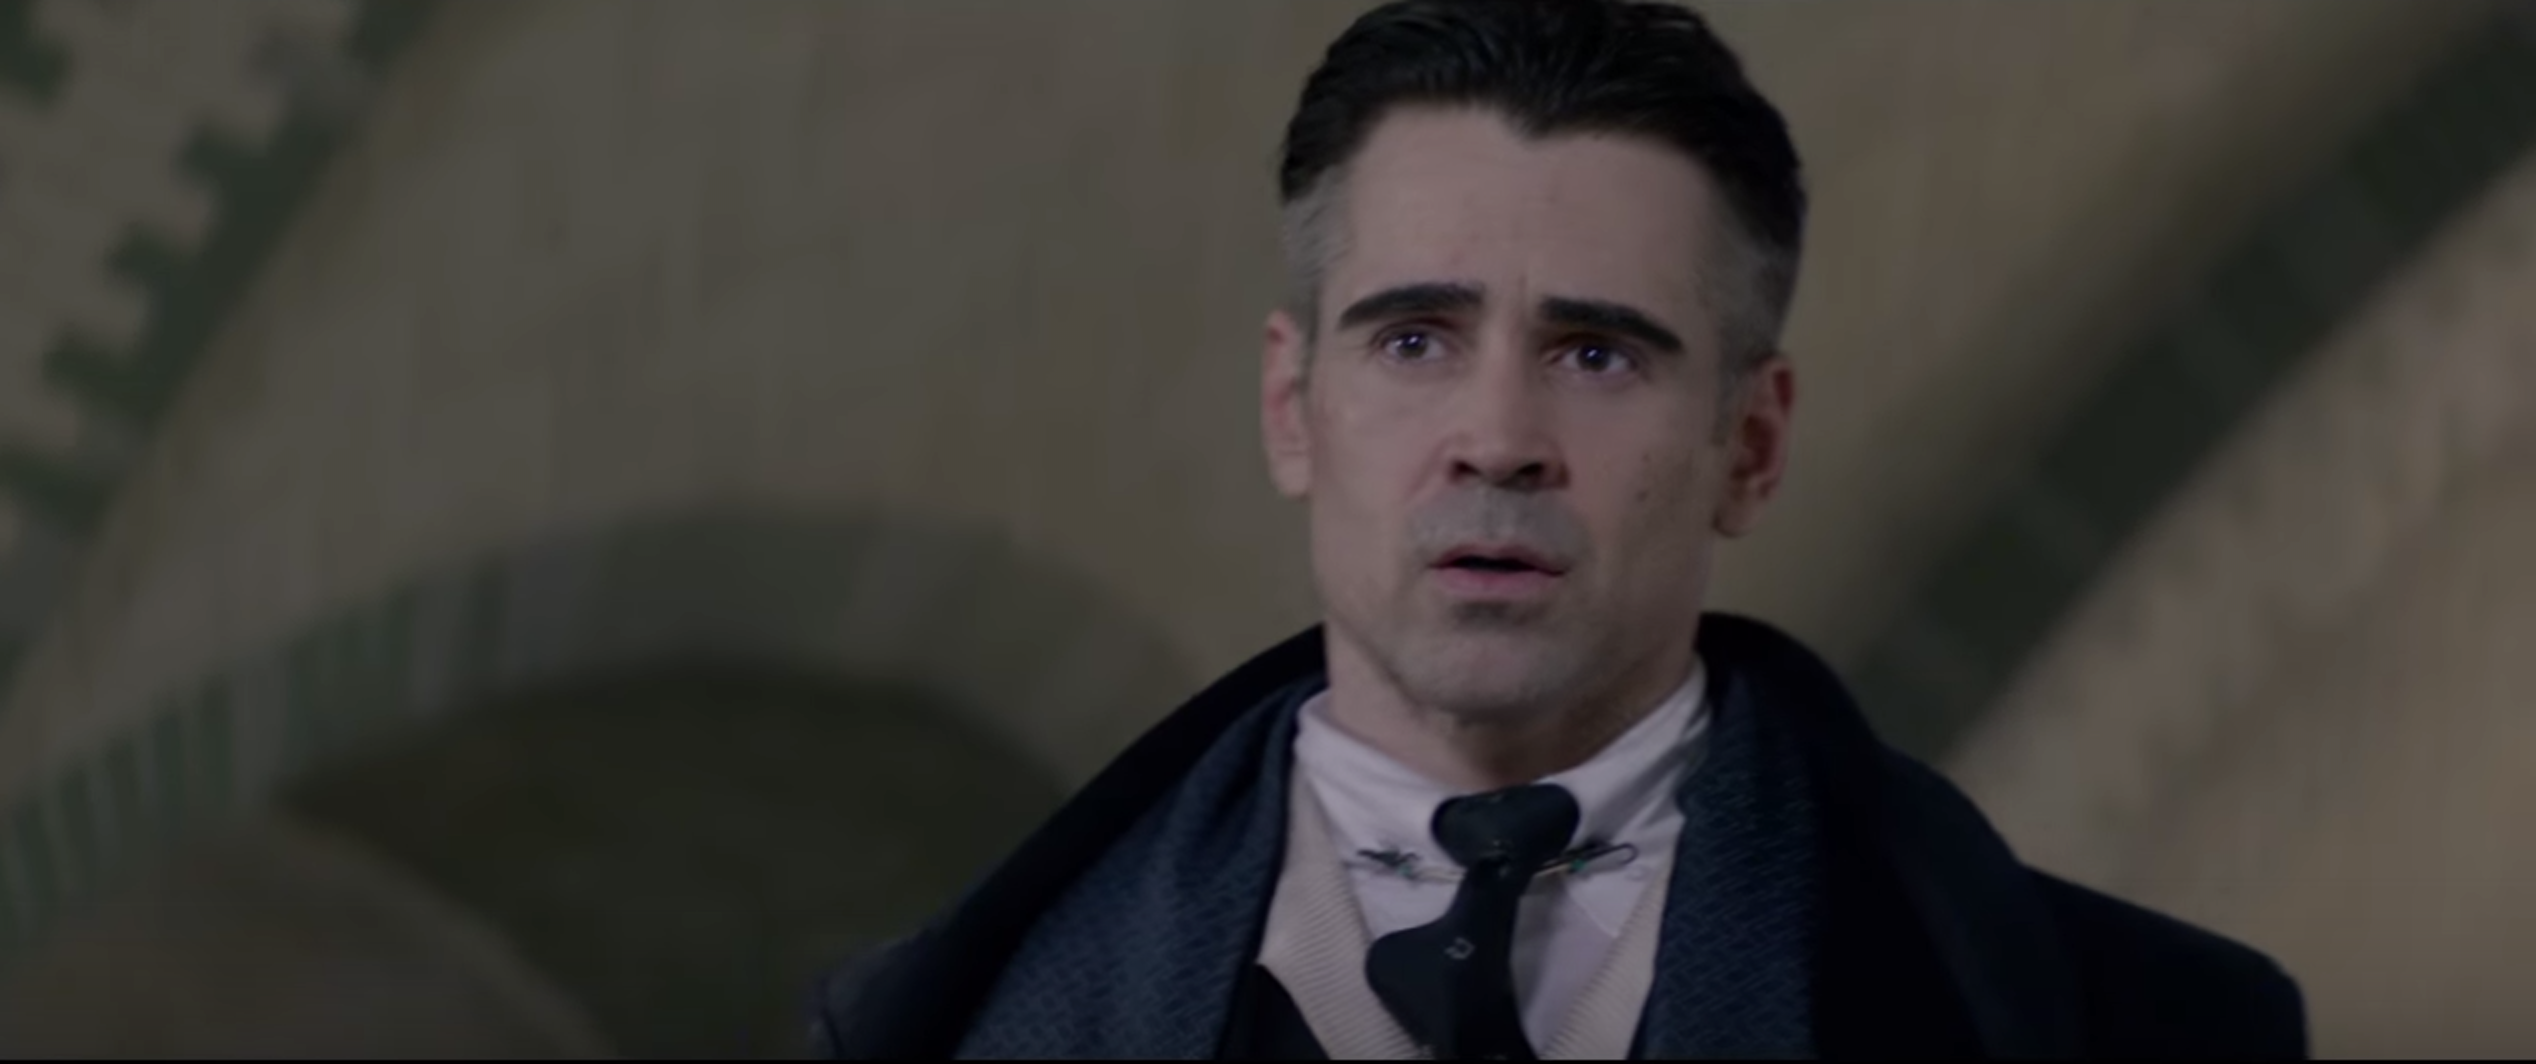 Colin Farrell as Percival Graves in Beasts